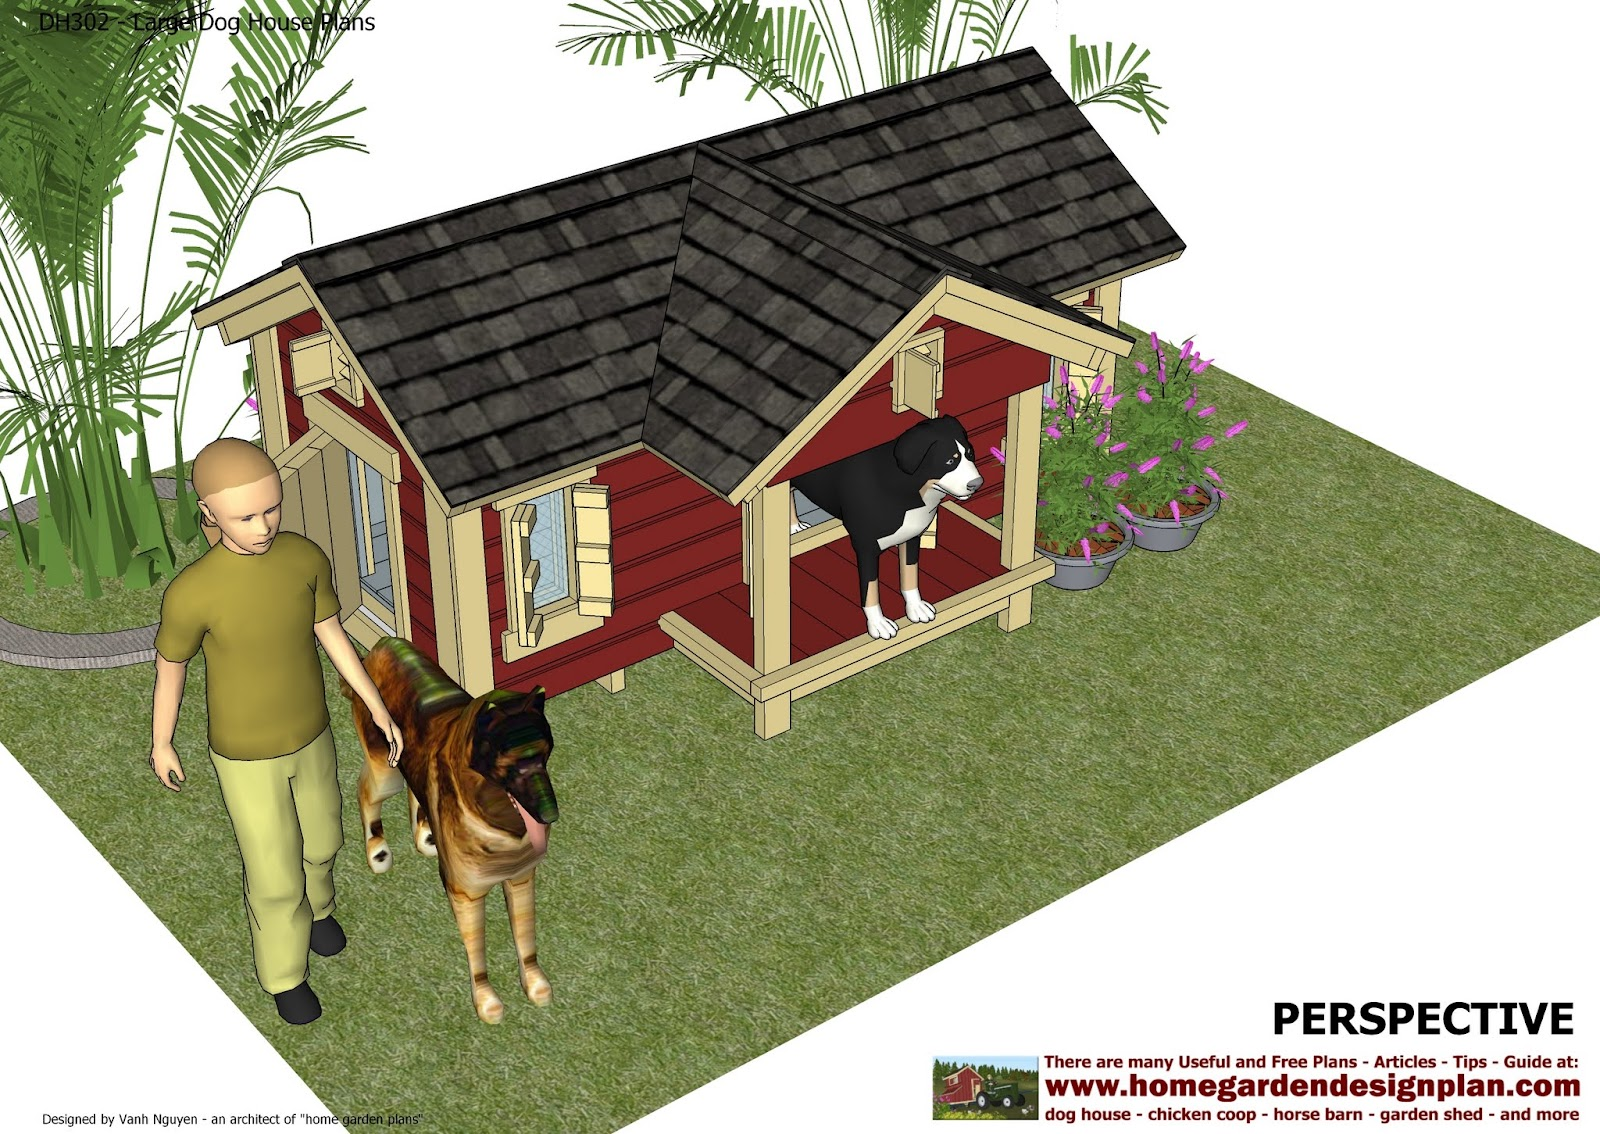 home garden plans  DH302   Insulated Dog House Plans Construction     An error occurred